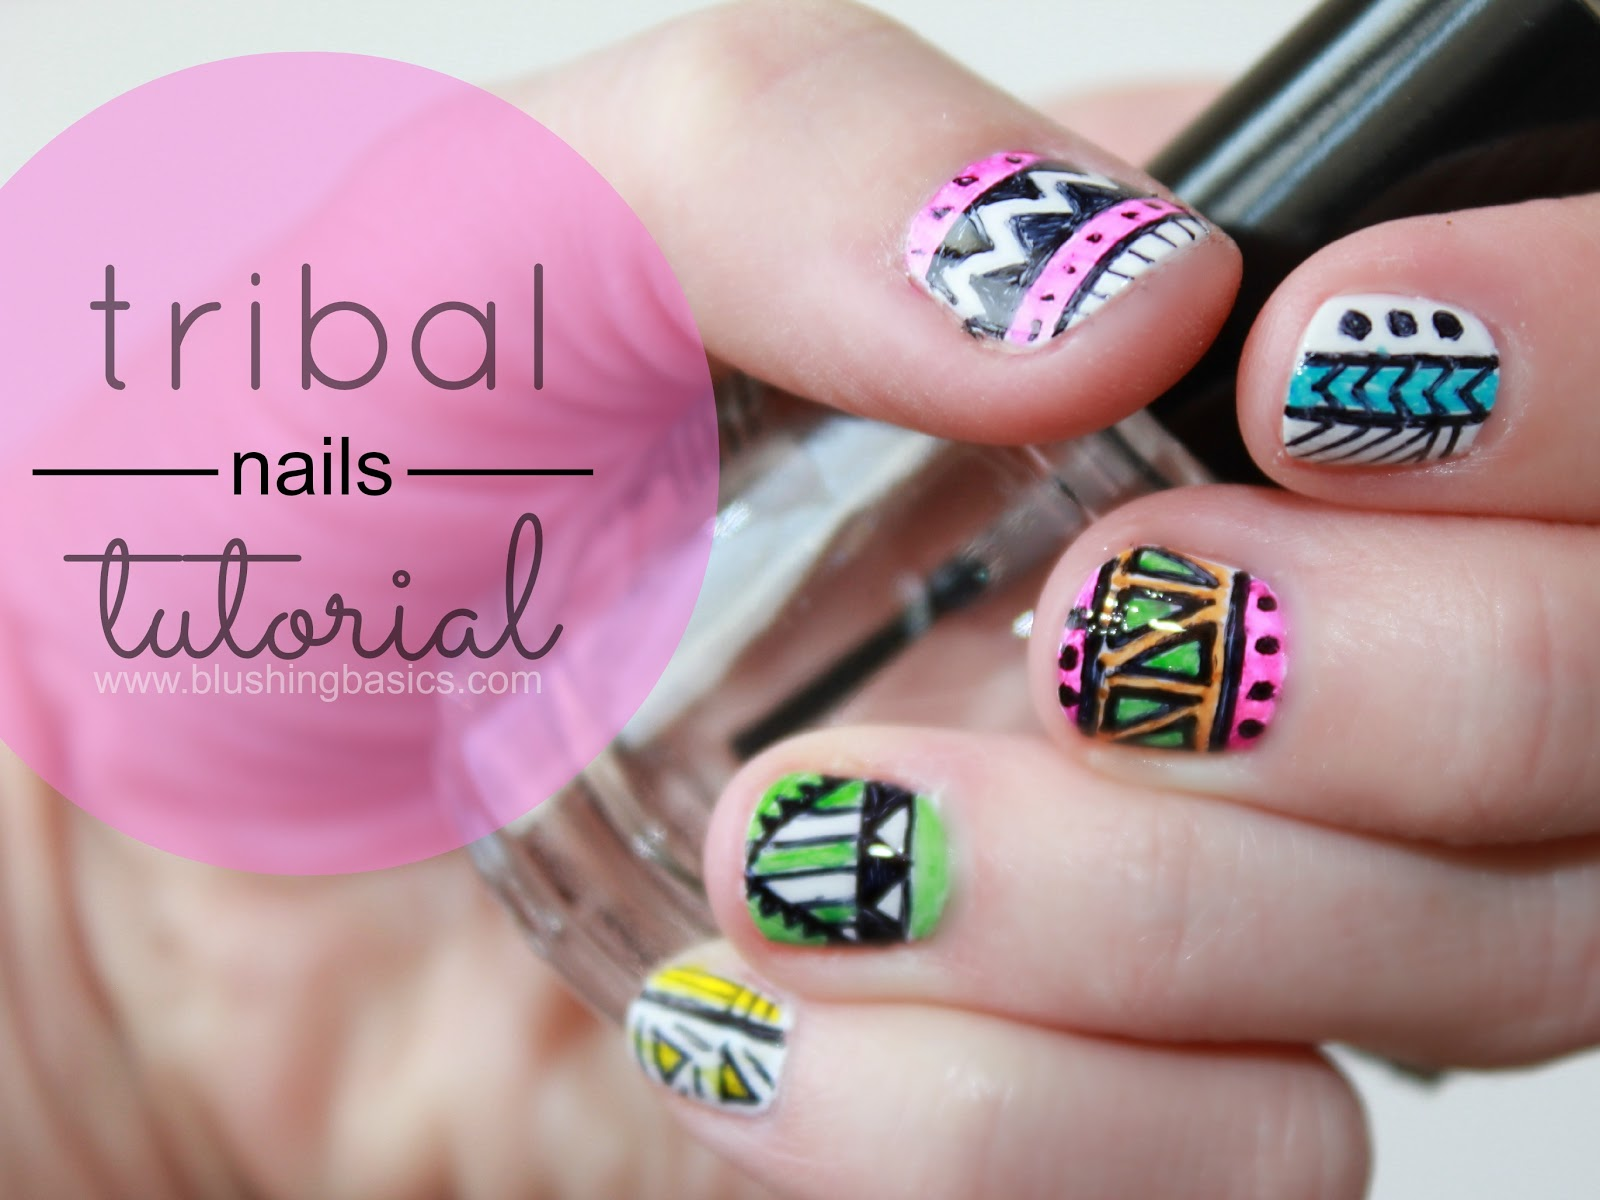 blushing basics: New Years Countdown #10 - Tribal Nail Art